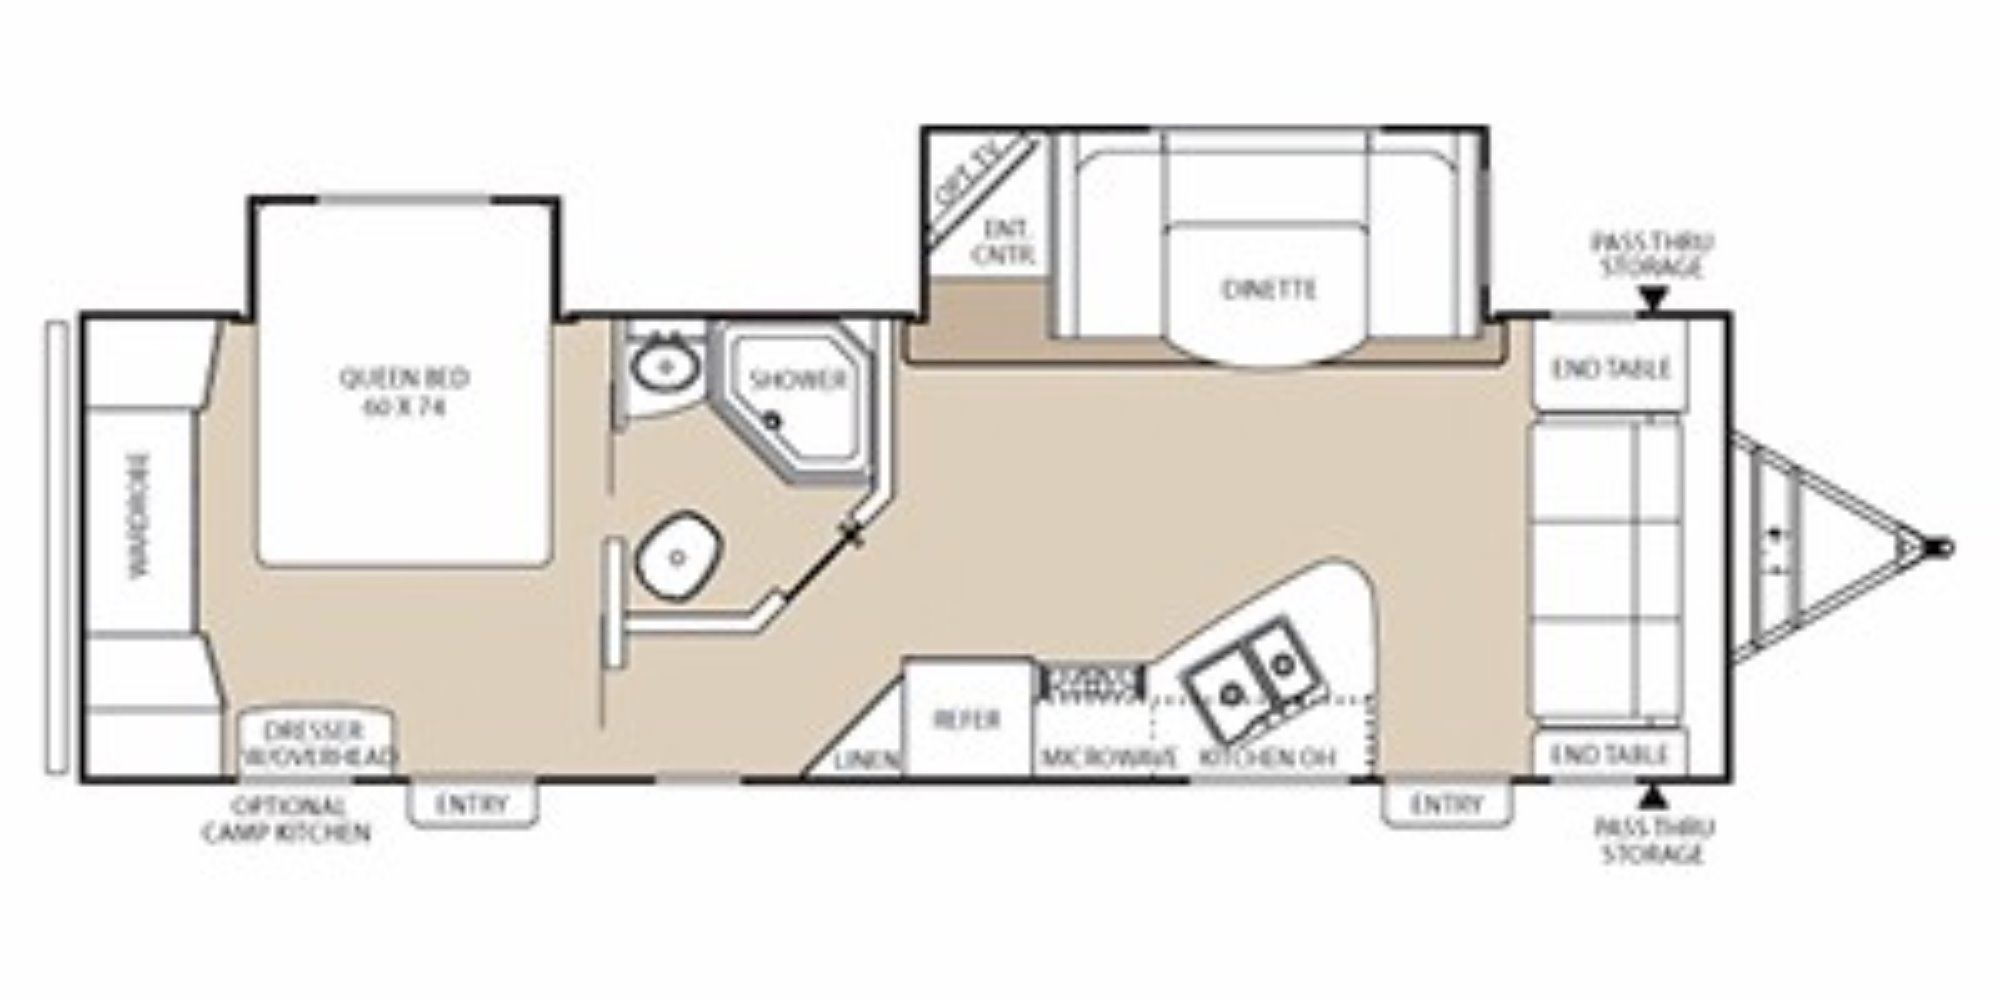 CRV - 2013 Coachman Freedom - Floor Plan.jpg